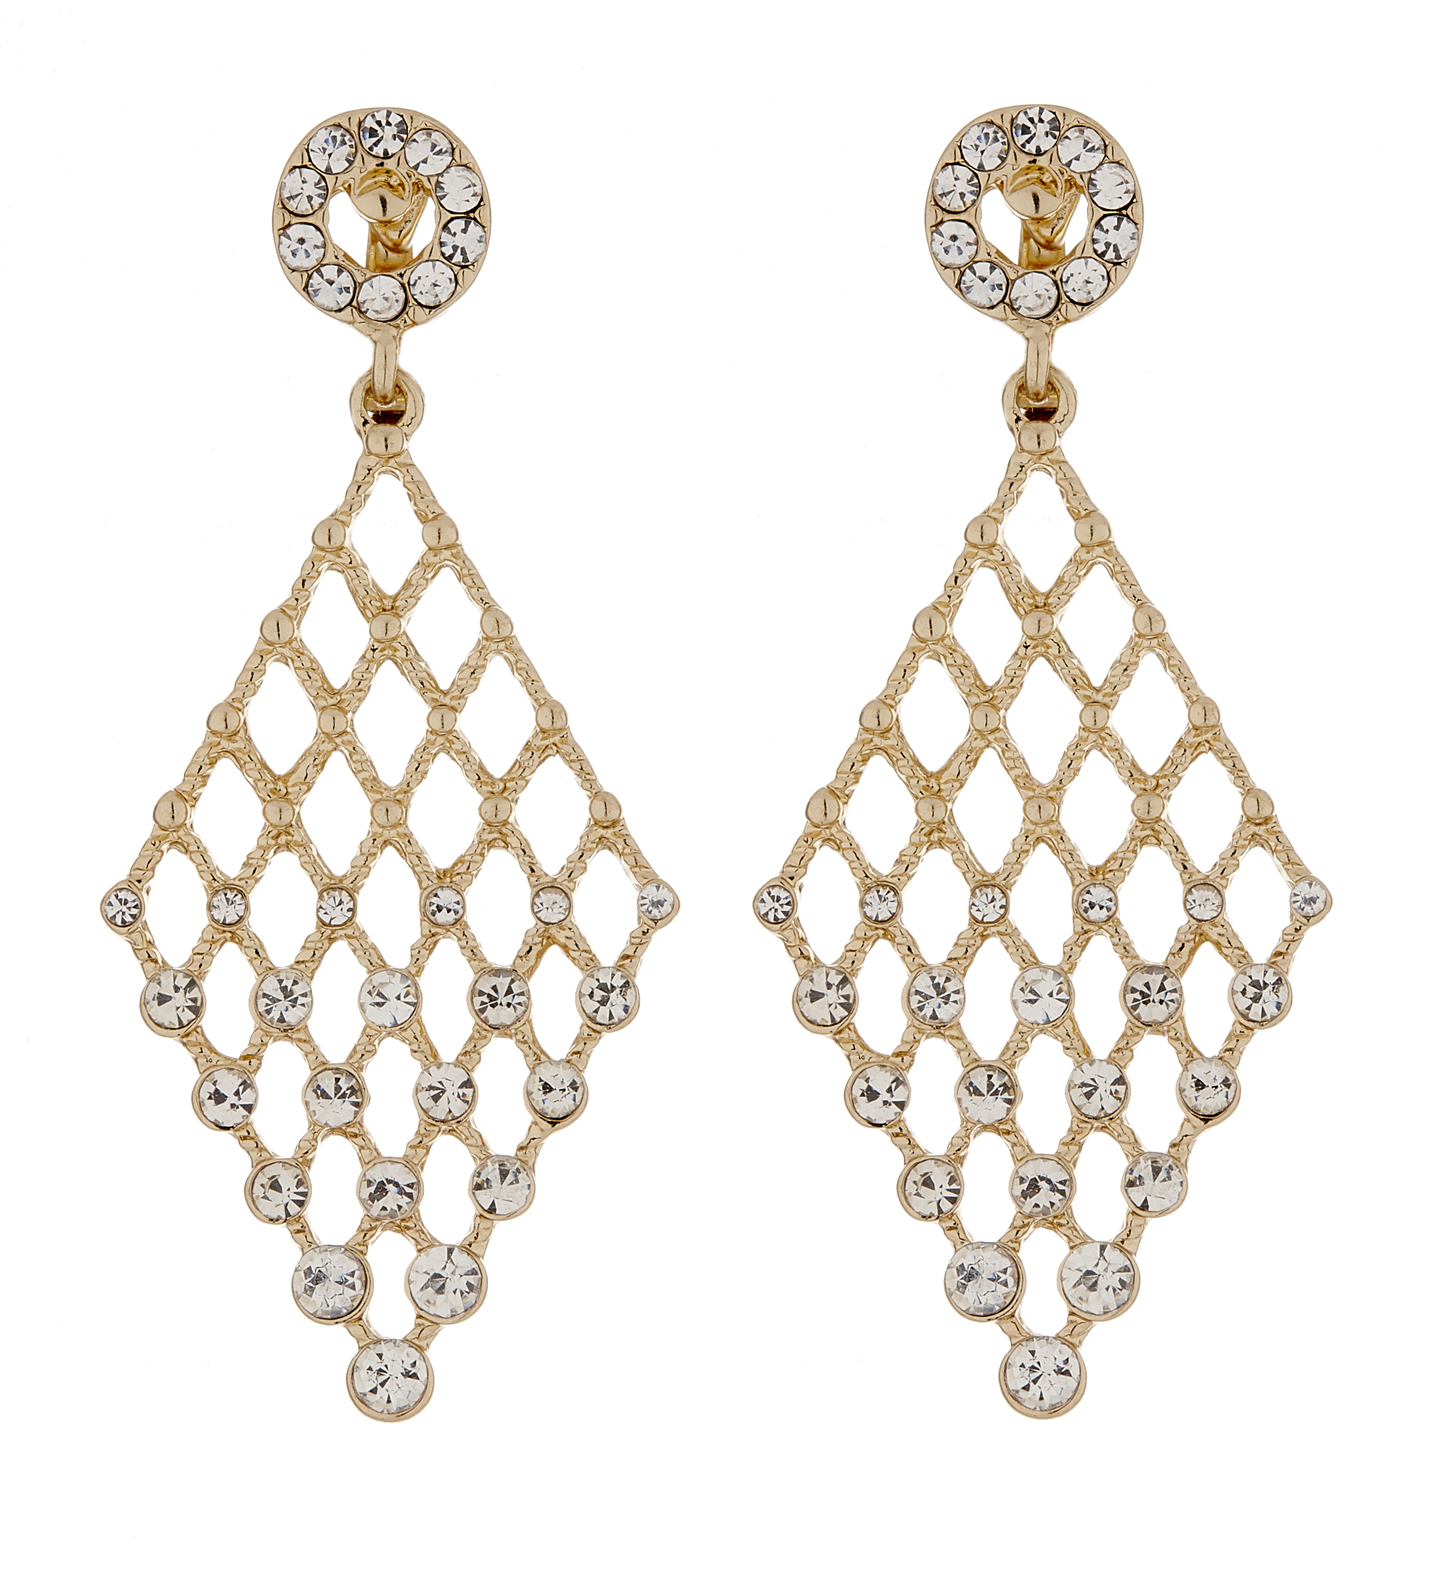 Clip On Earrings - Annie G - gold chandelier earring with clear crystals